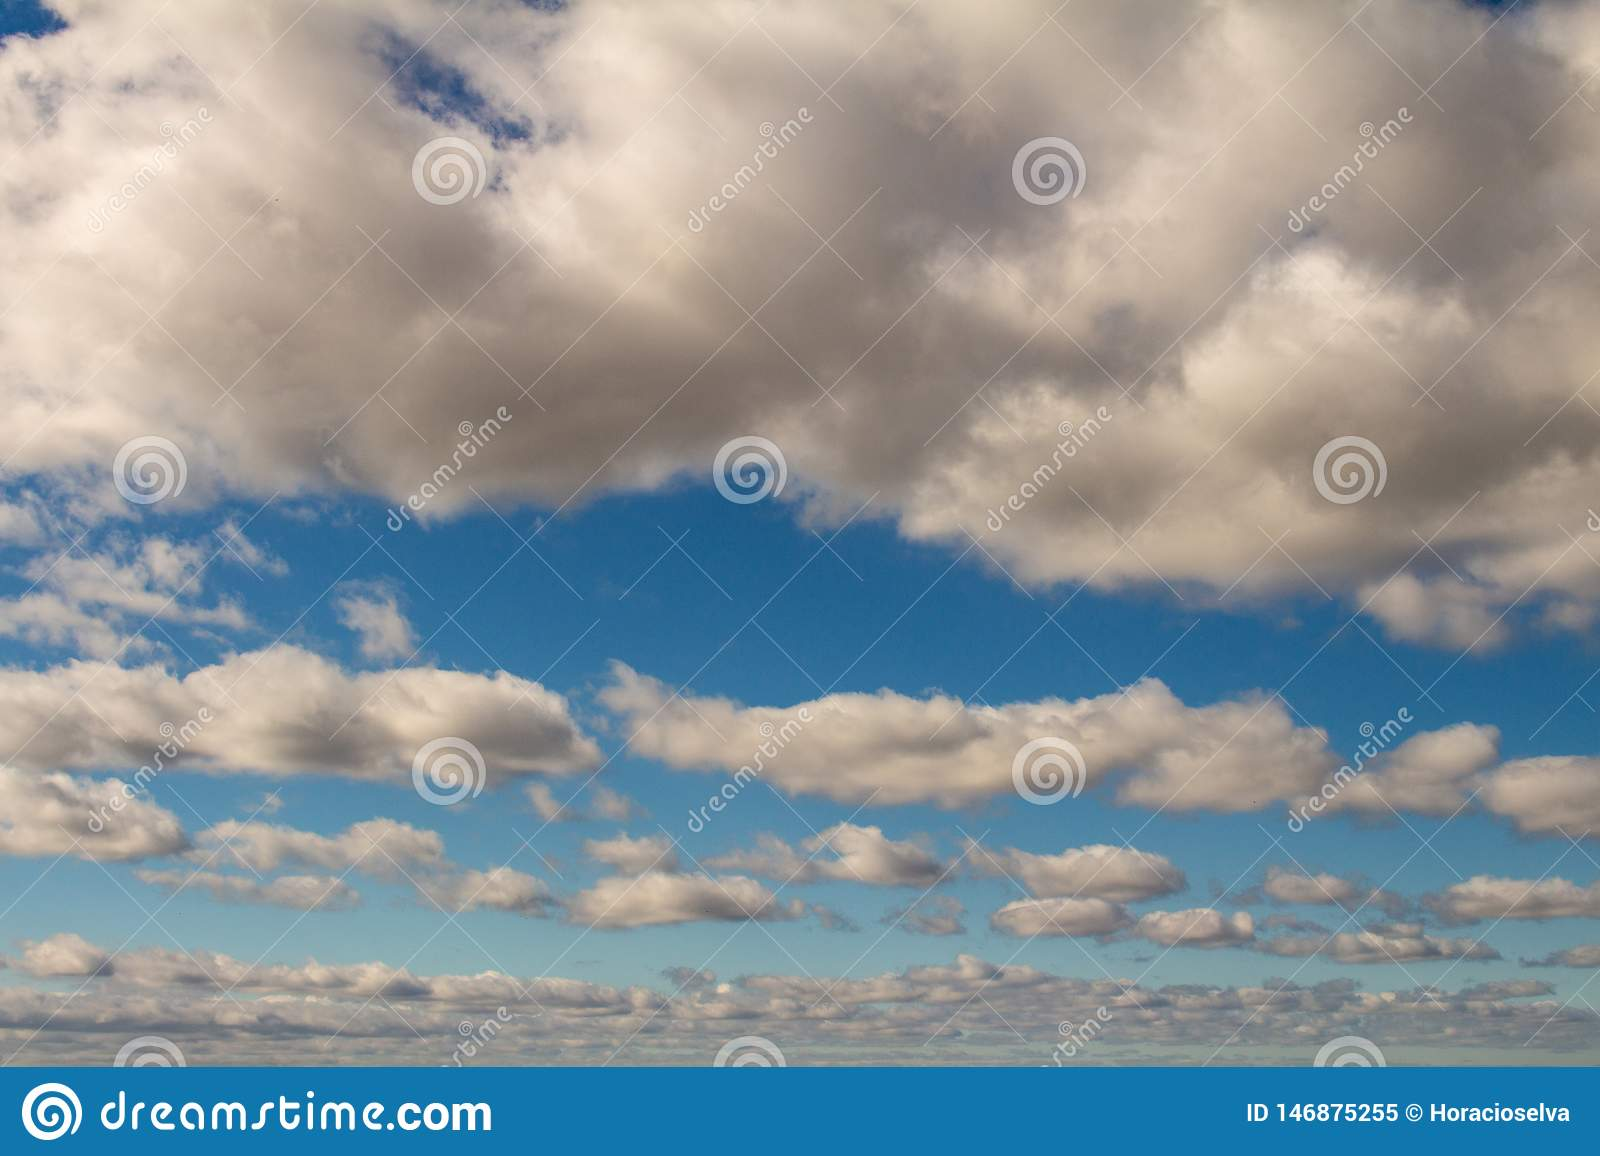 Sky of abundant white clouds and celestial spaces. Cottony clouds distributed throughout the sky